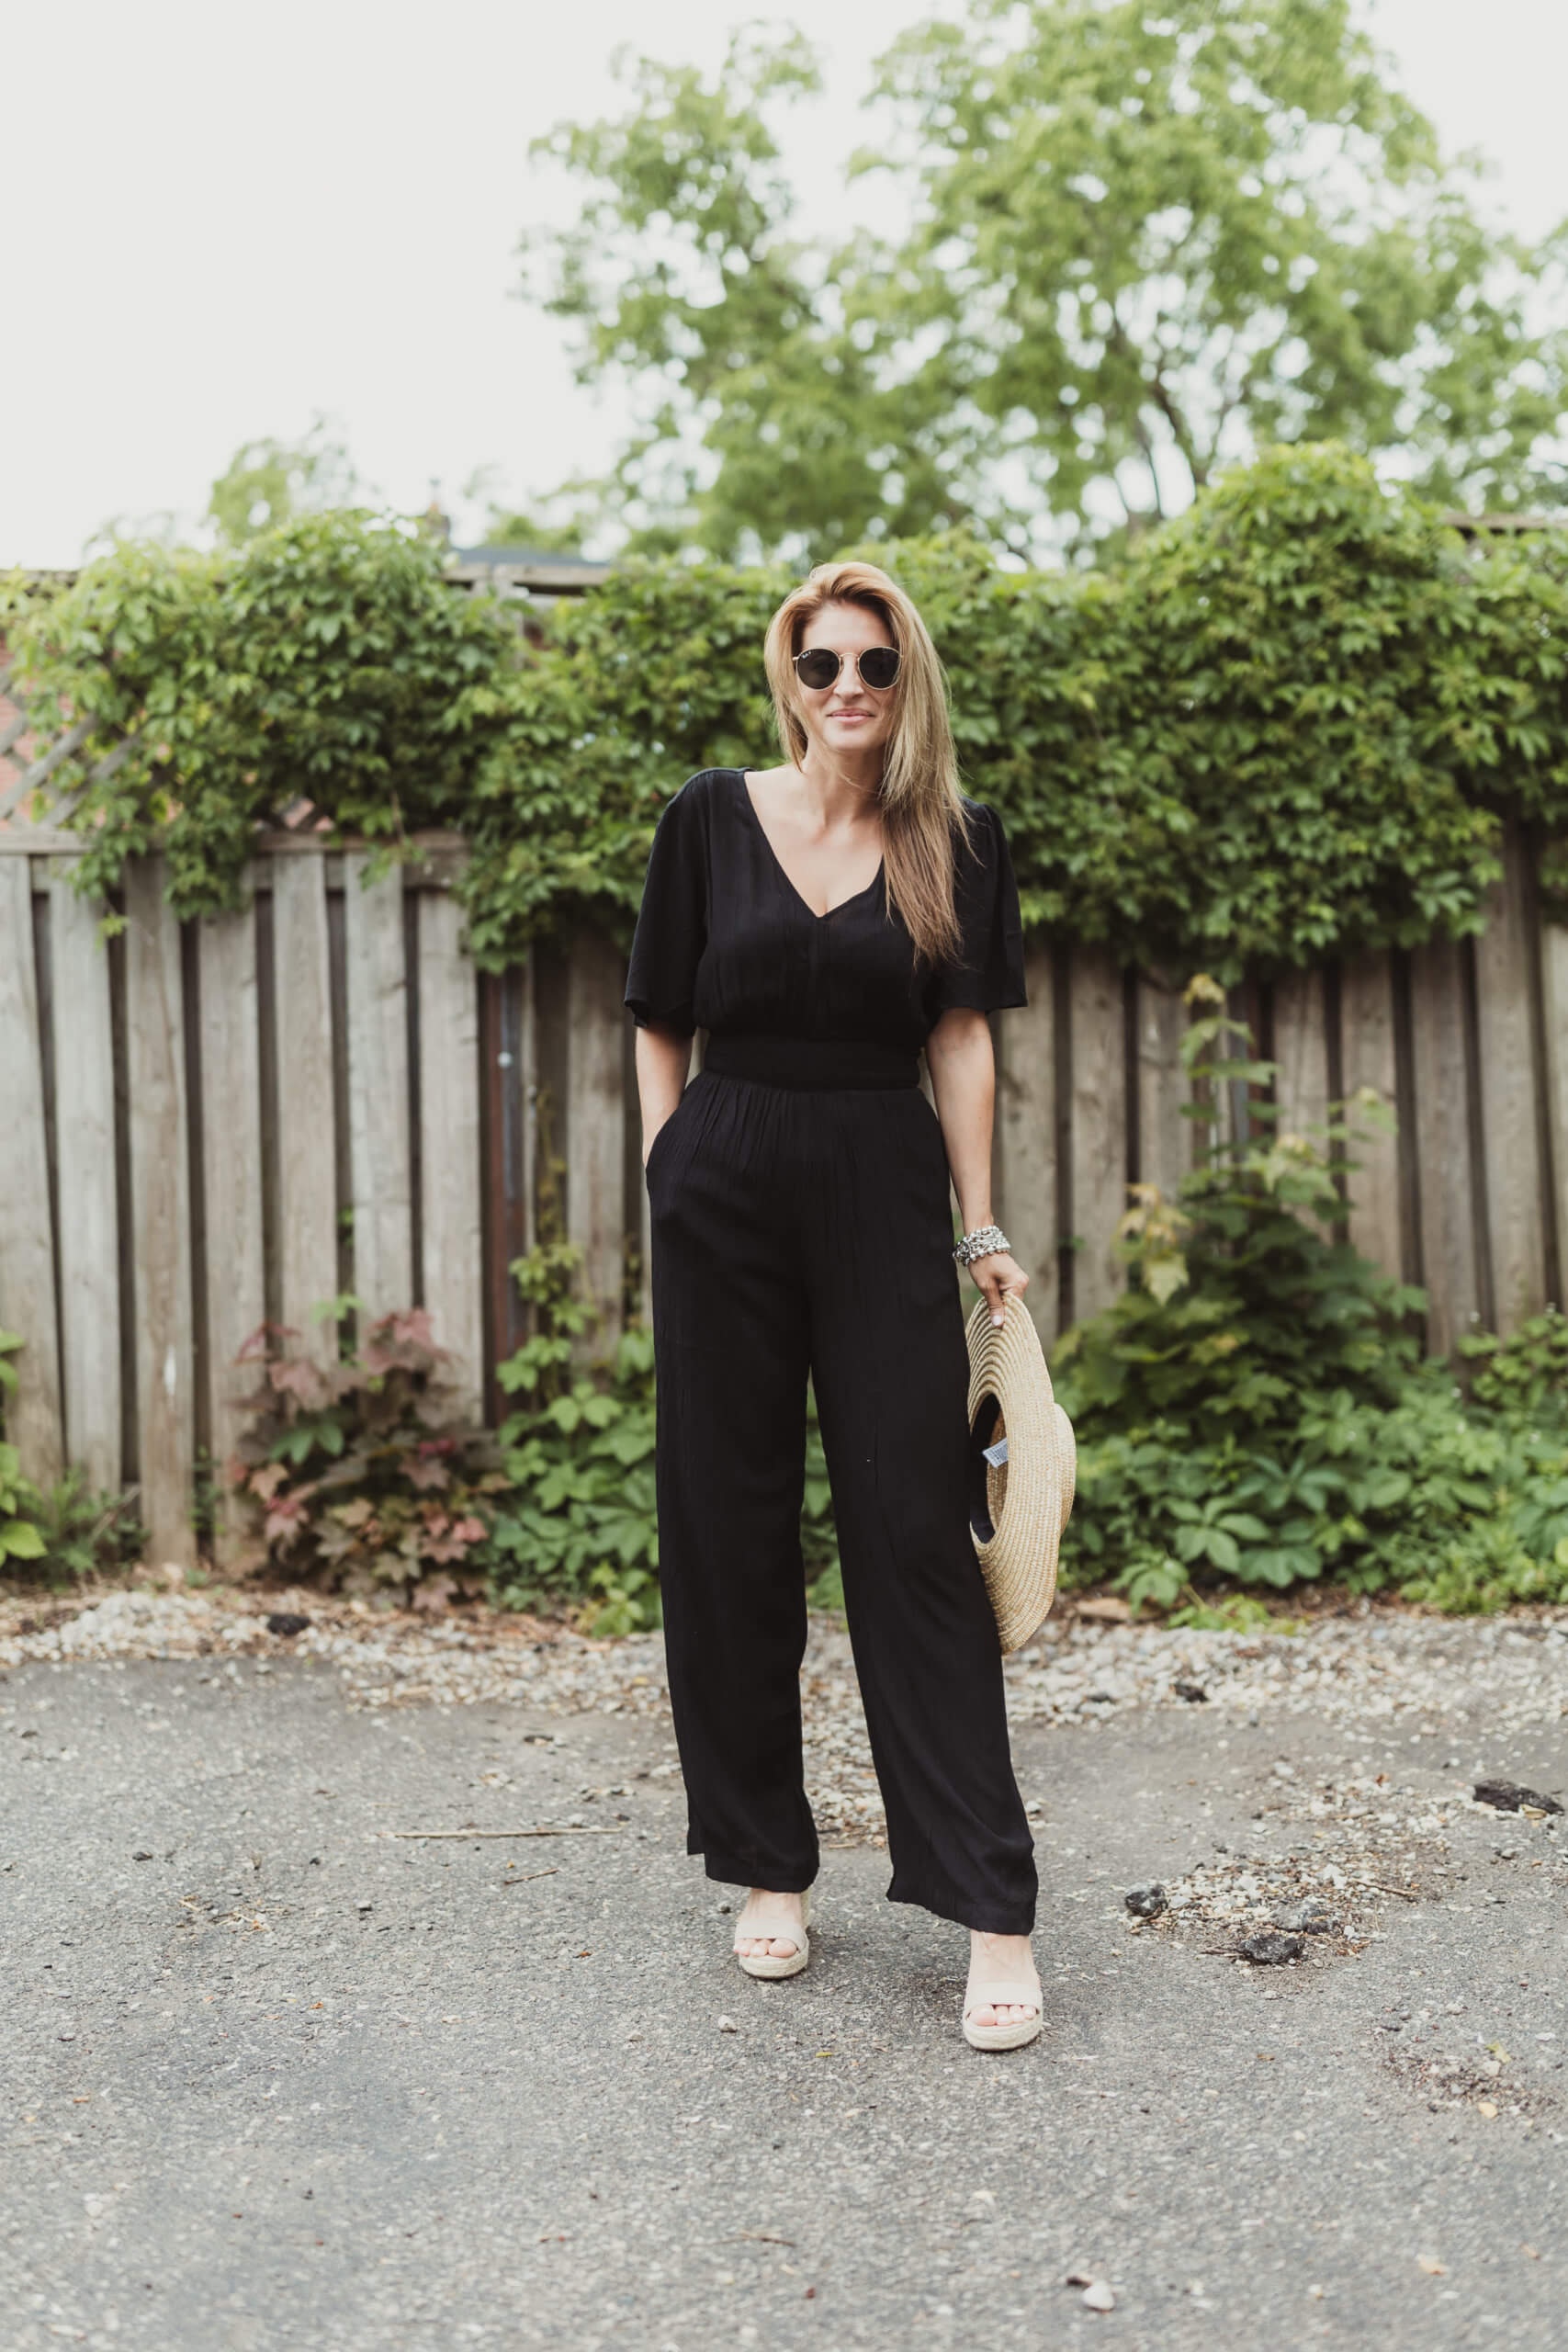 Turquoise Boutique Whitby; Downtown Whitby Shopping; jumpsuit Turquoise Boutique